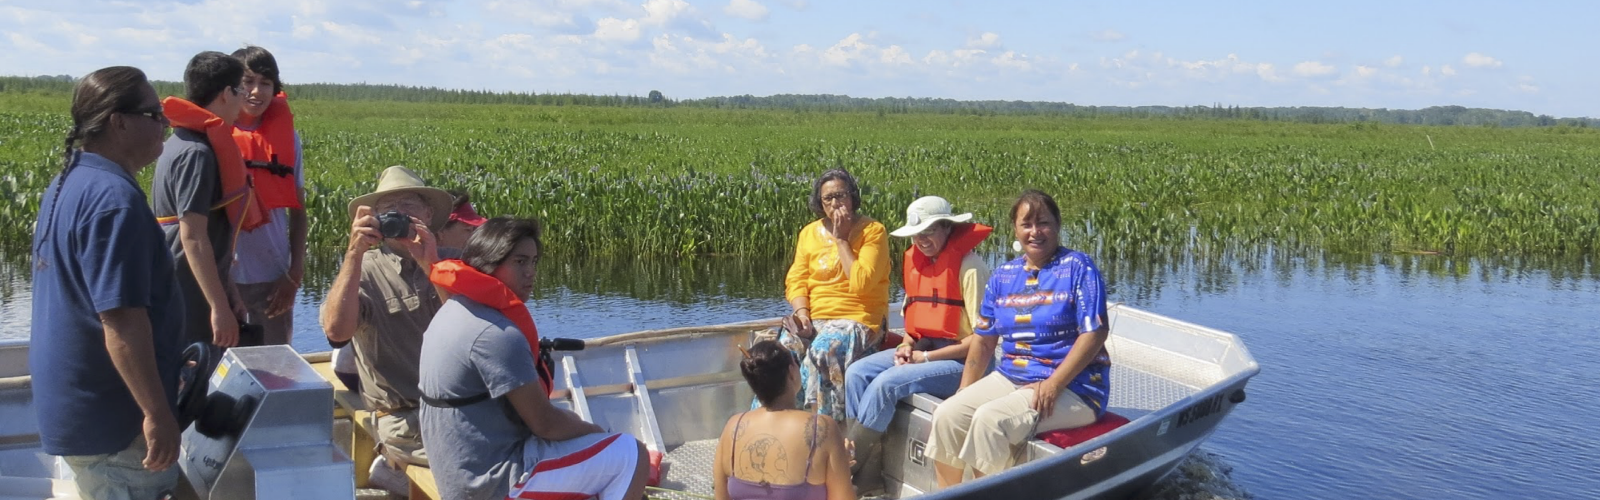 Indigenous Arts and Sciences participants on boats